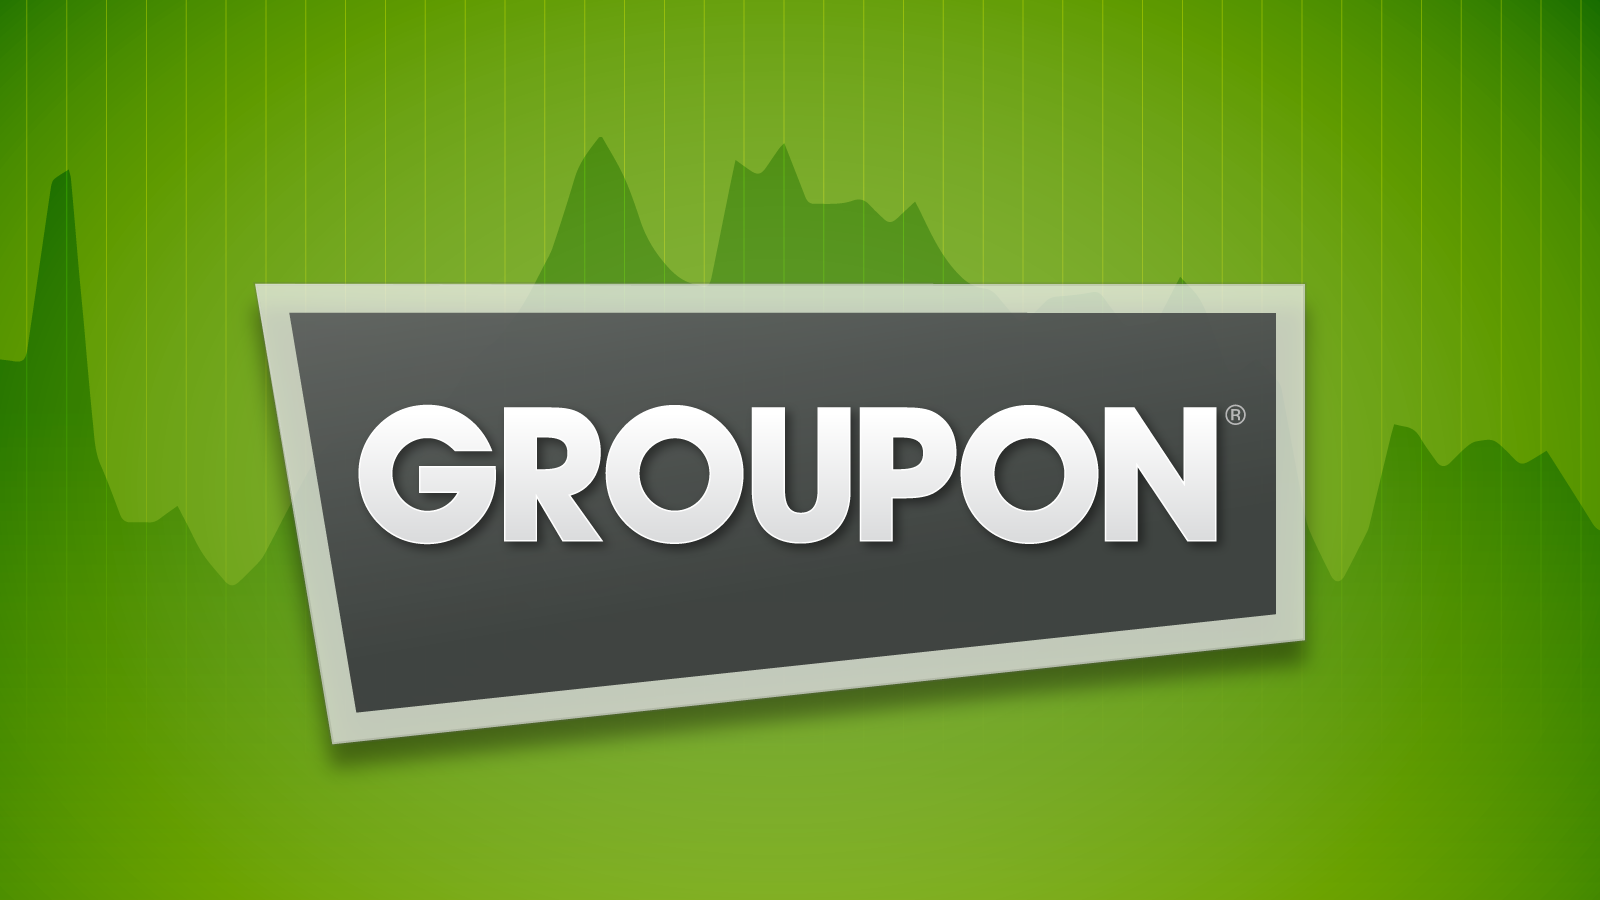 Groupon names rich williams coo as cfo jason child steps down to groupon names rich williams coo as cfo jason child steps down to take up cfo role at jawbone techcrunch buycottarizona Image collections